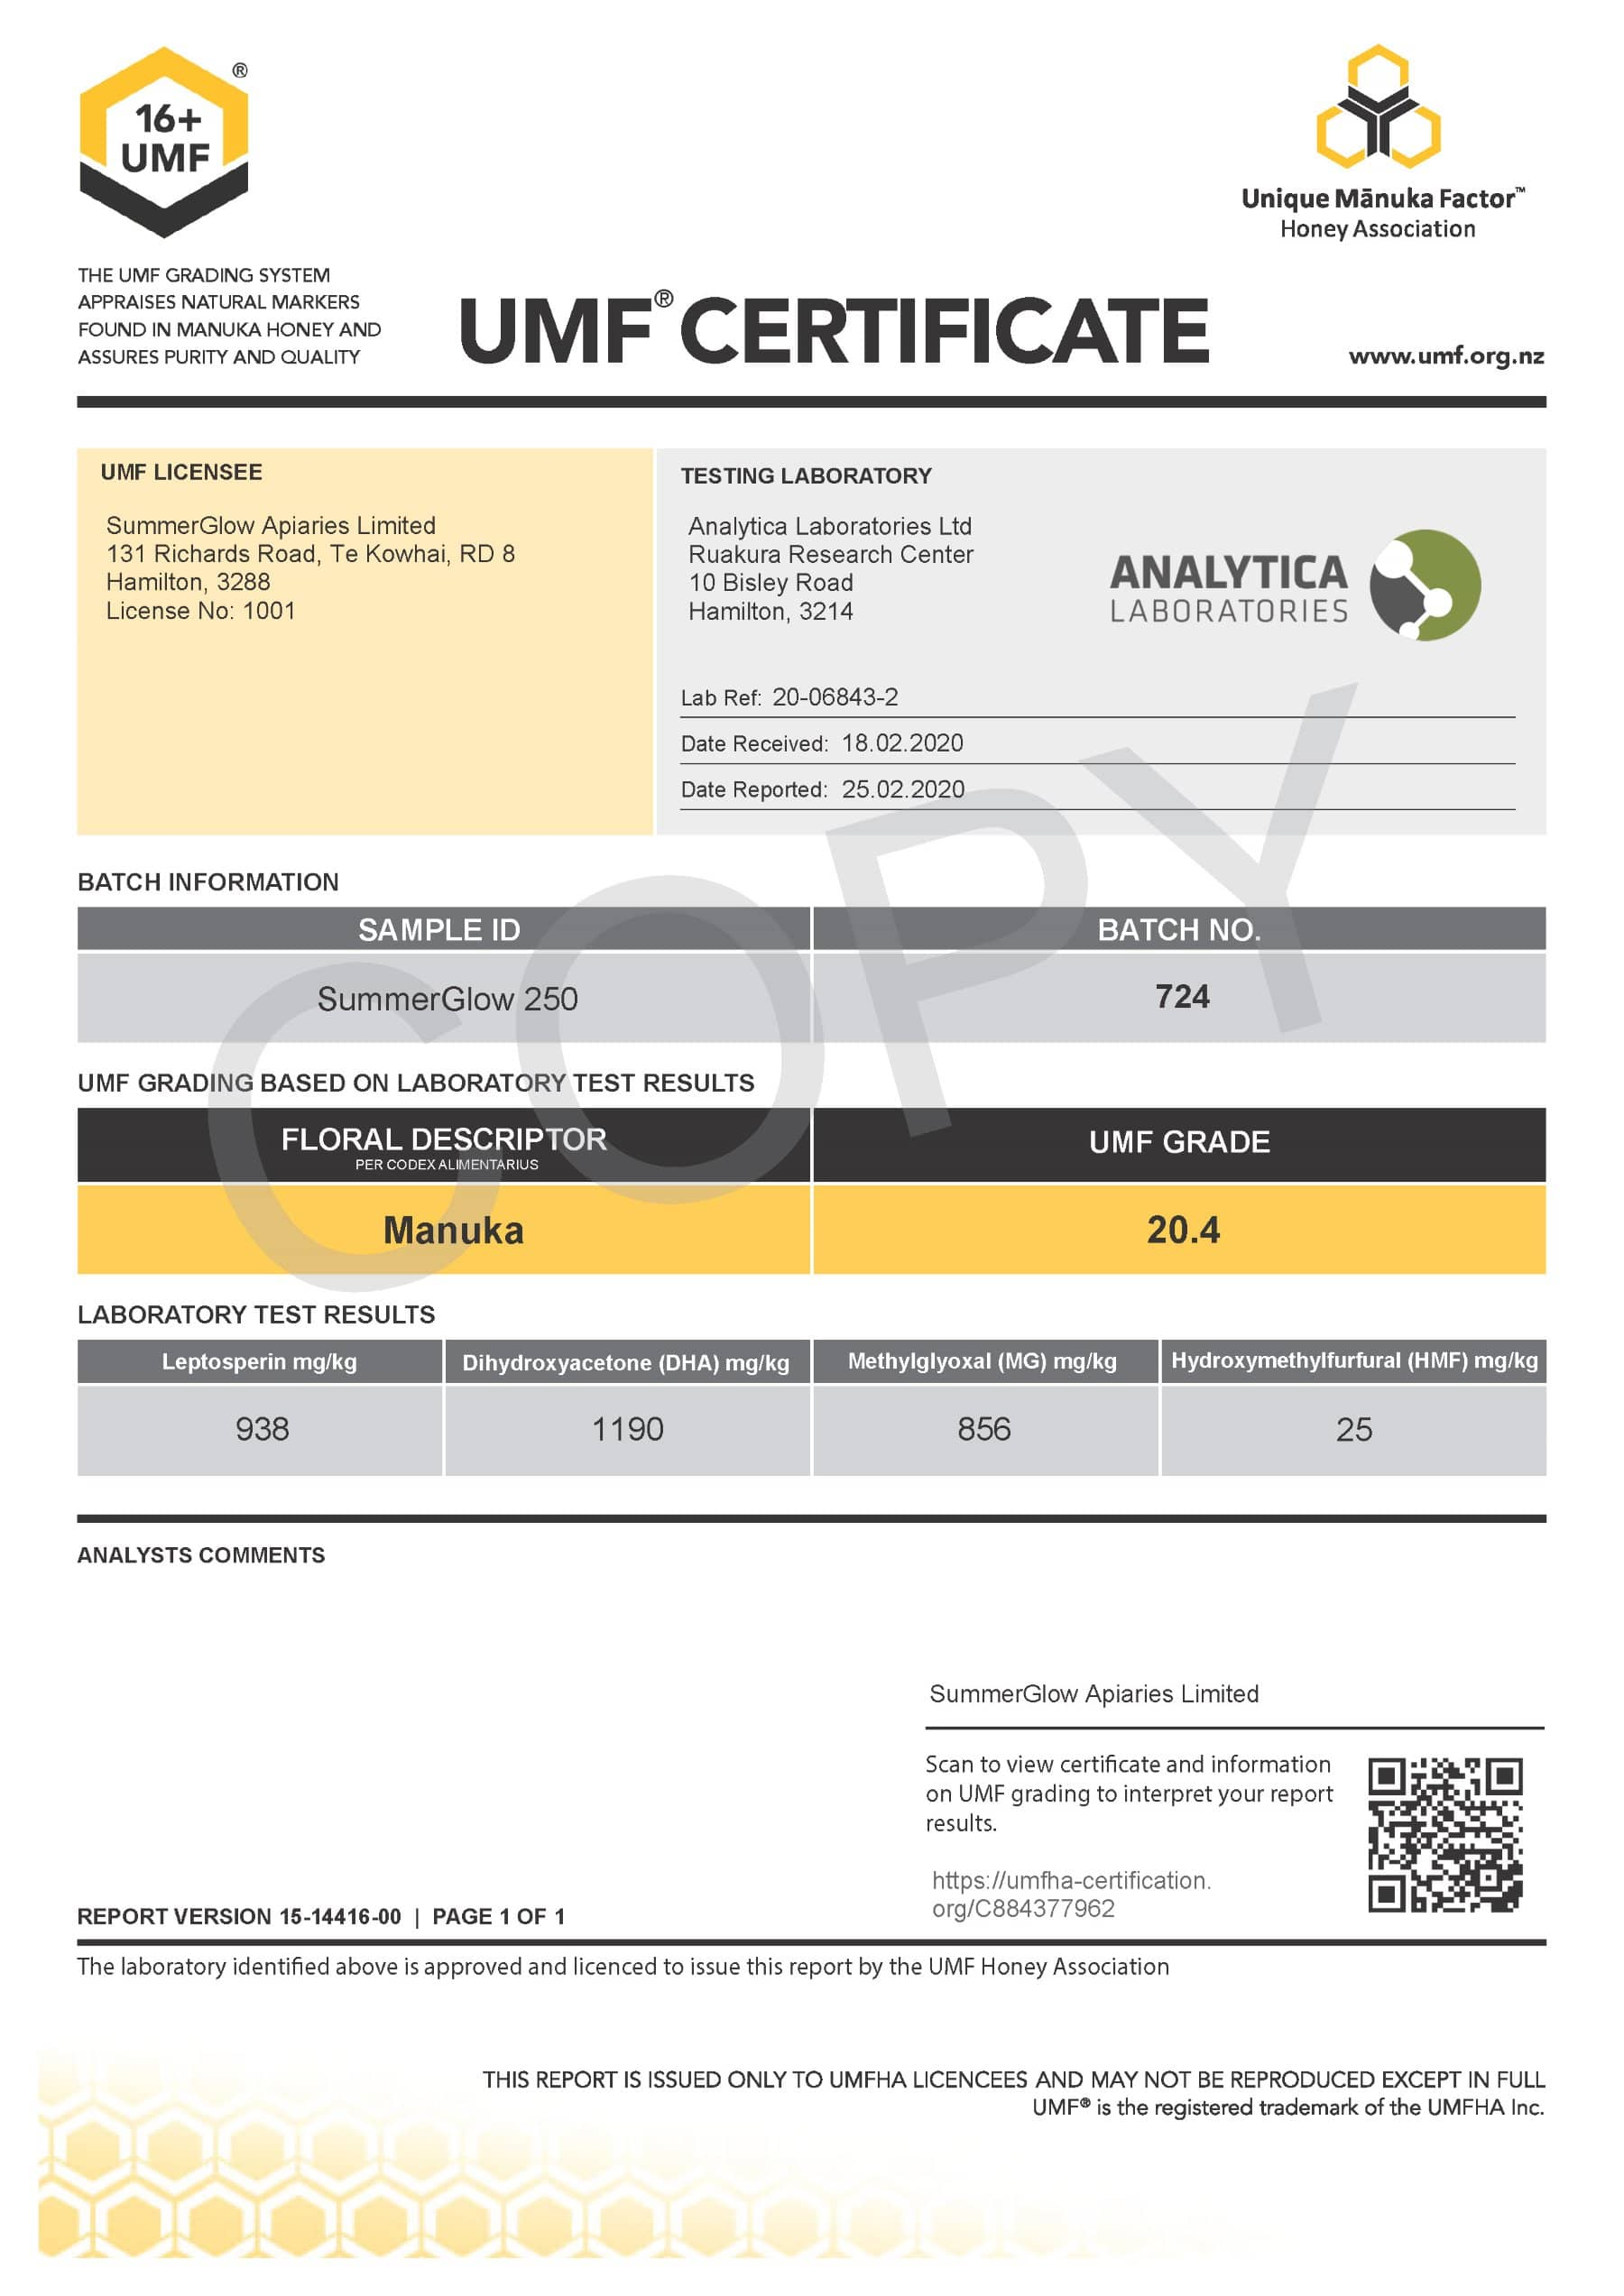 Click to view PDF of the UMF Certificate for Summerglow UMF16+ Manuka Honey